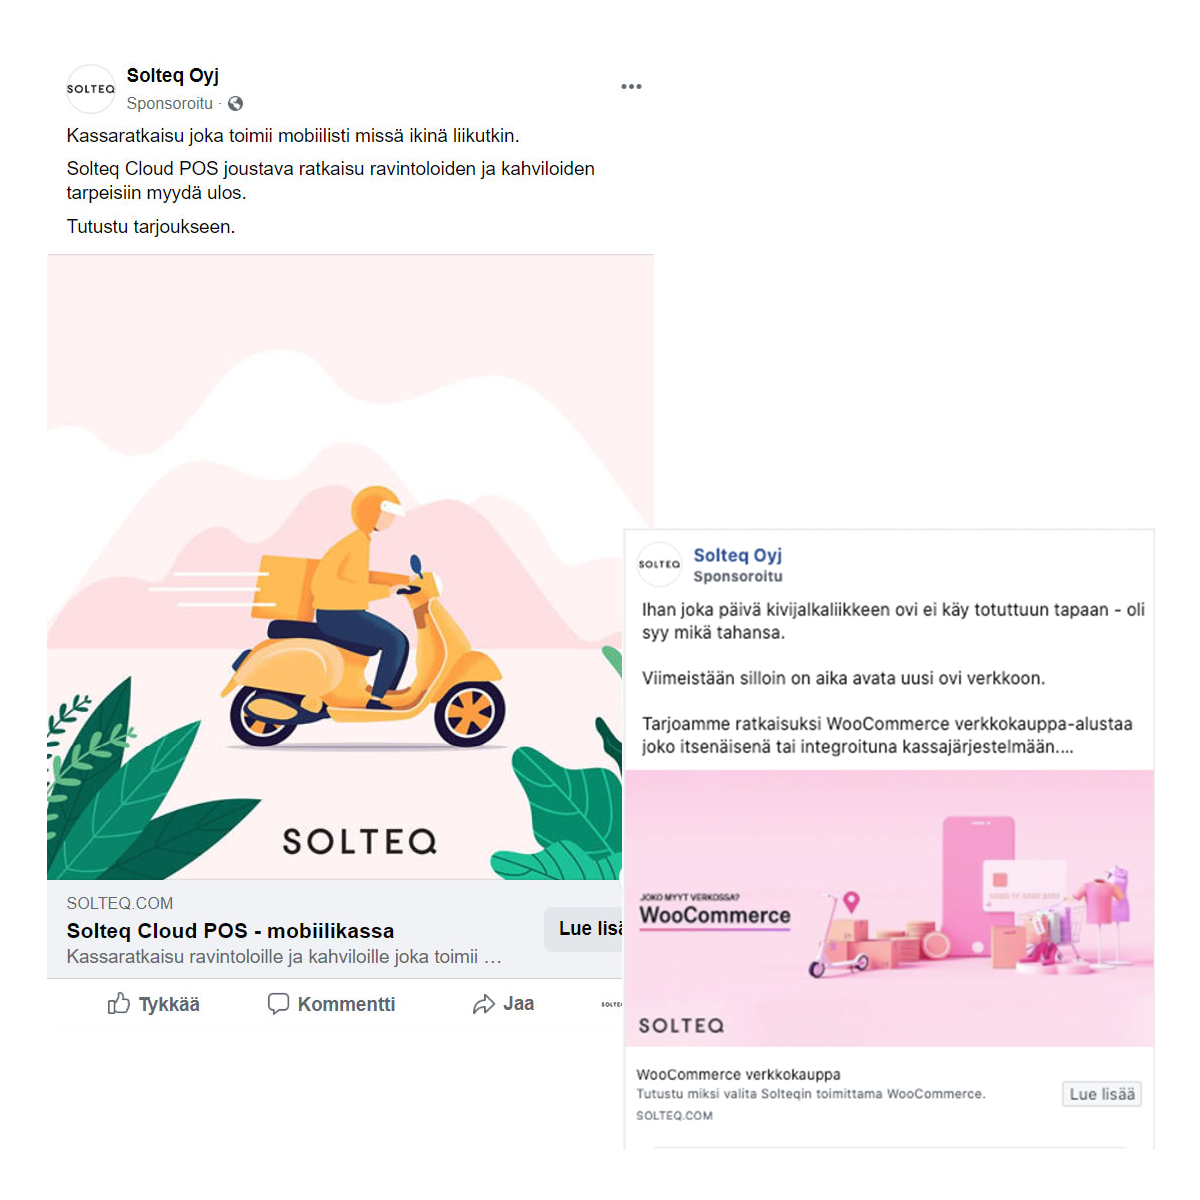 Solteq's social media ads on Facebook